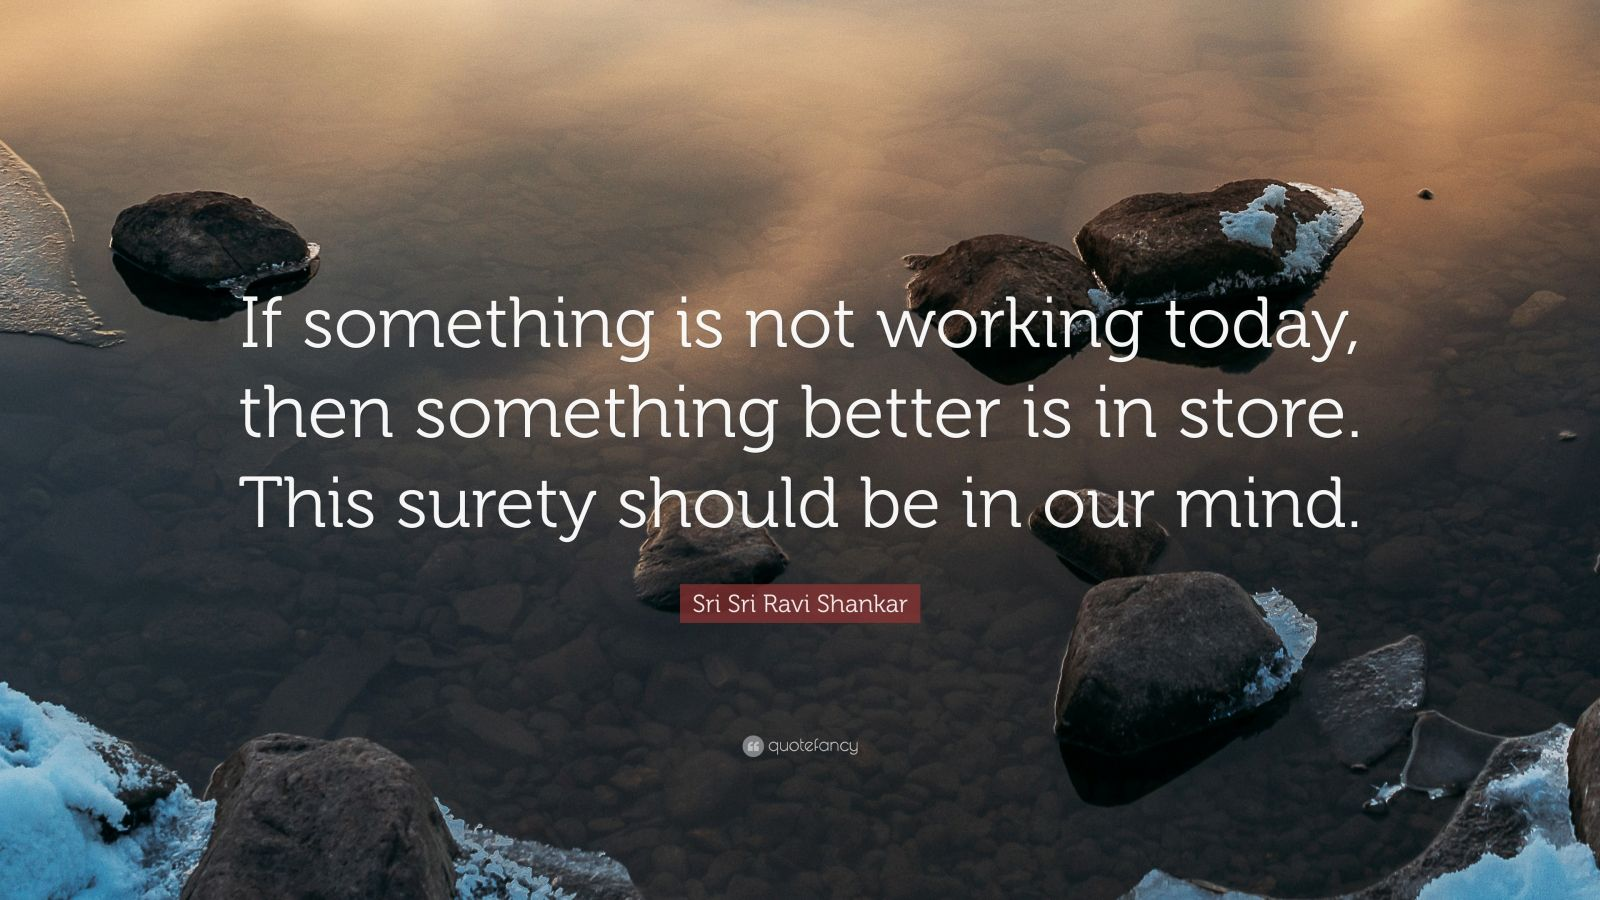 """Sri Sri Ravi Shankar Quote: """"If something is not working today, then something better is in store. This surety should be in our mind."""""""